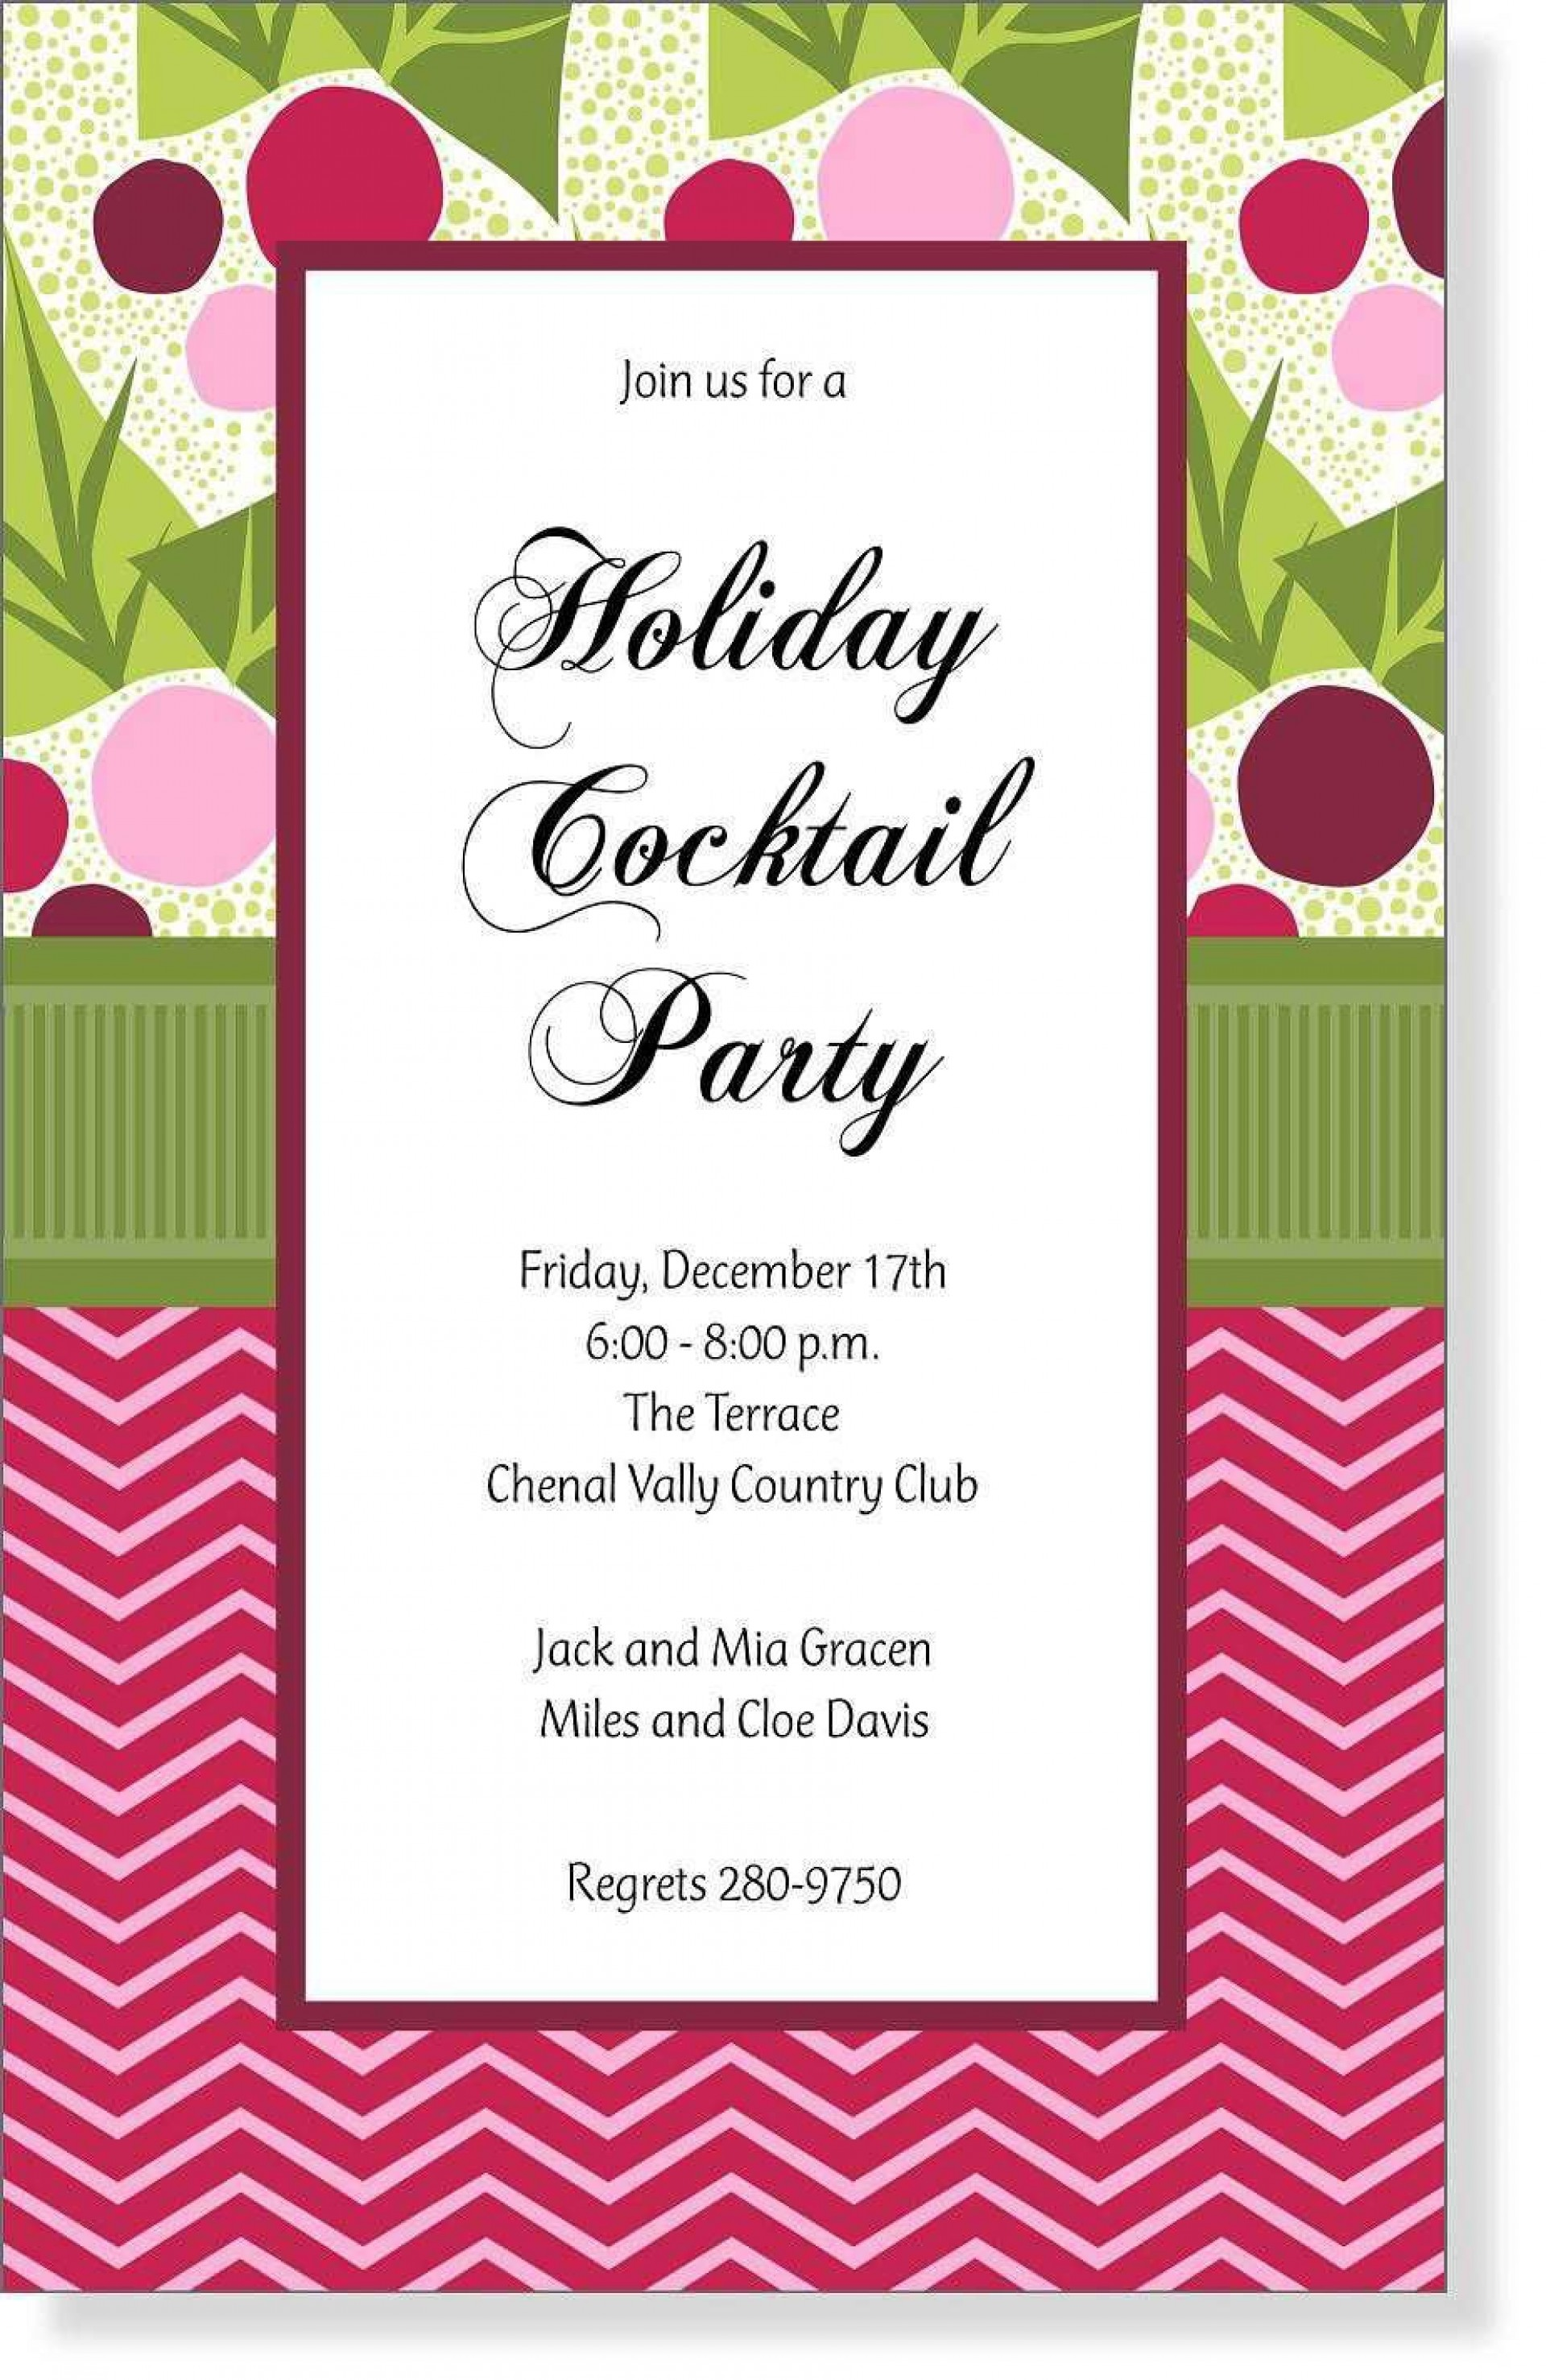 003 Rare Holiday Open House Invitation Template High Definition  Christma Free Printable Wording Idea1920